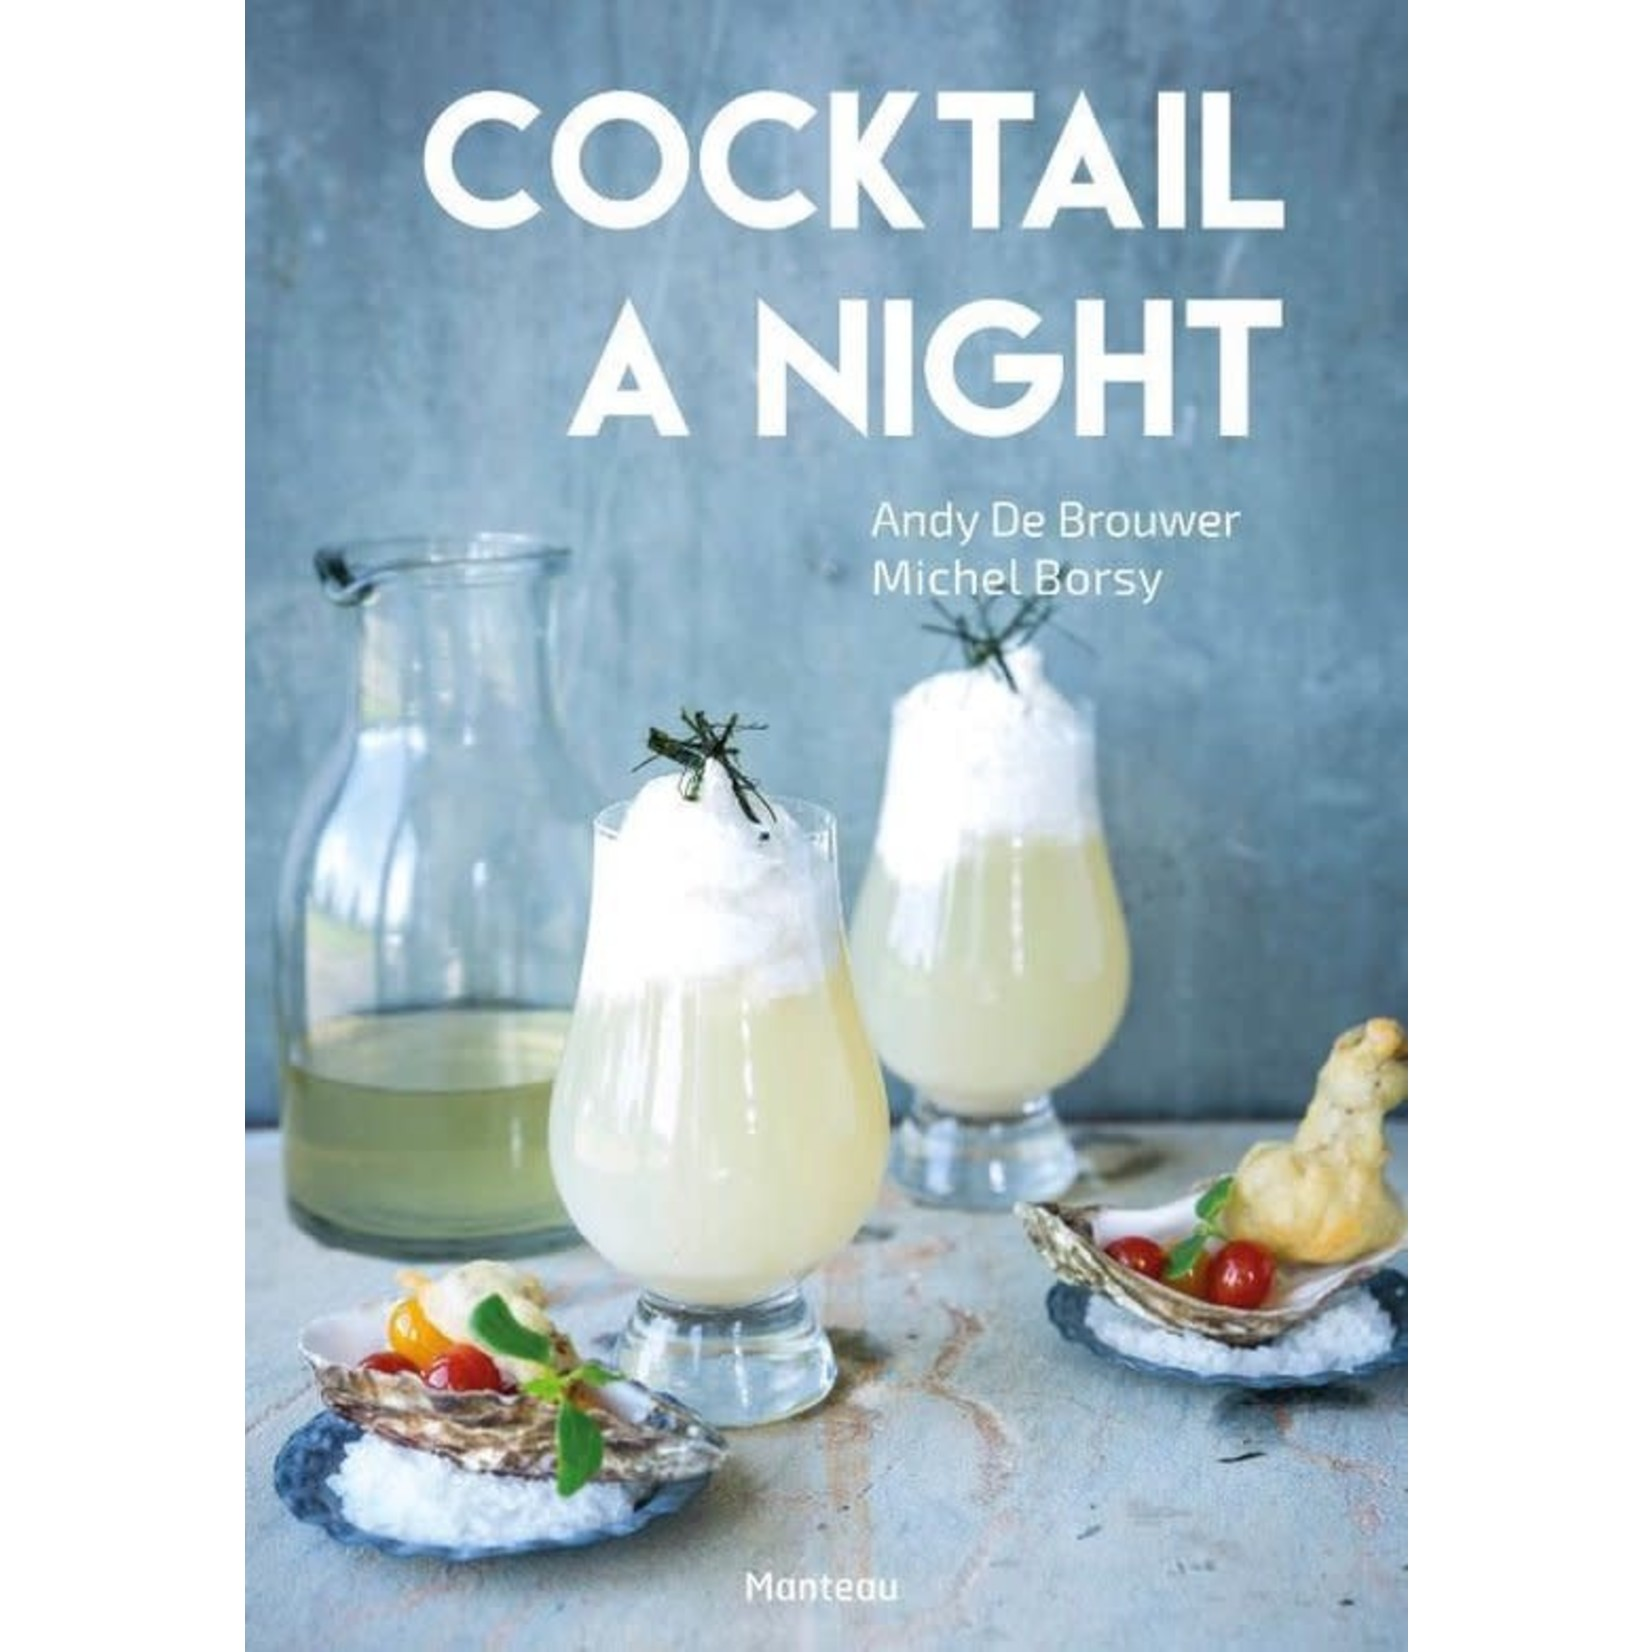 Cocktail a night